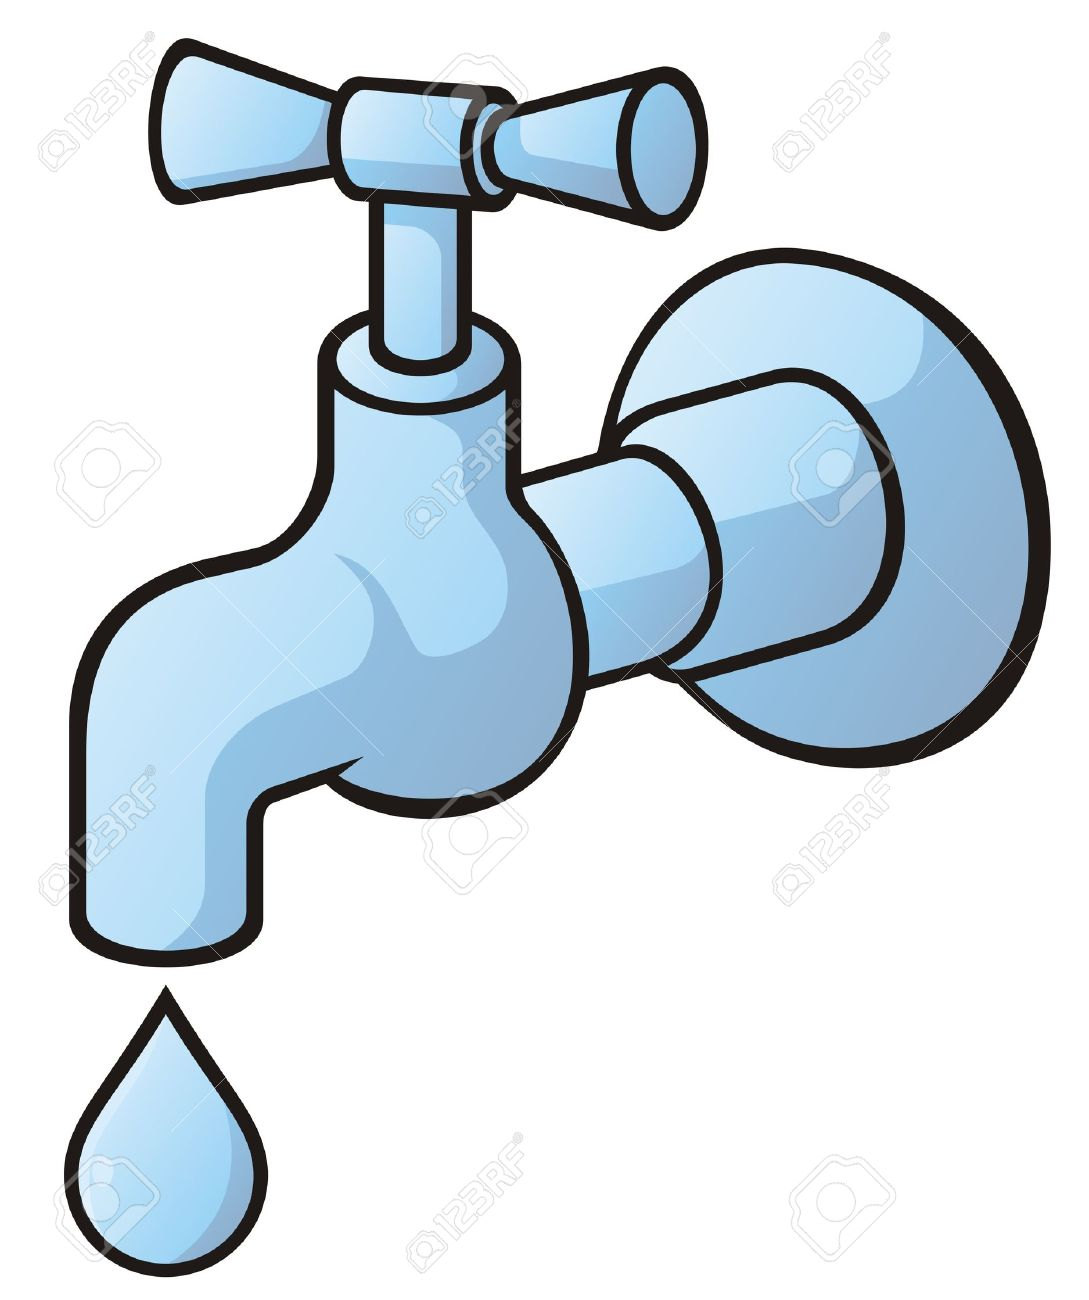 Water taps clipart svg freeuse download Faucet Clipart | Free download best Faucet Clipart on ClipArtMag.com svg freeuse download